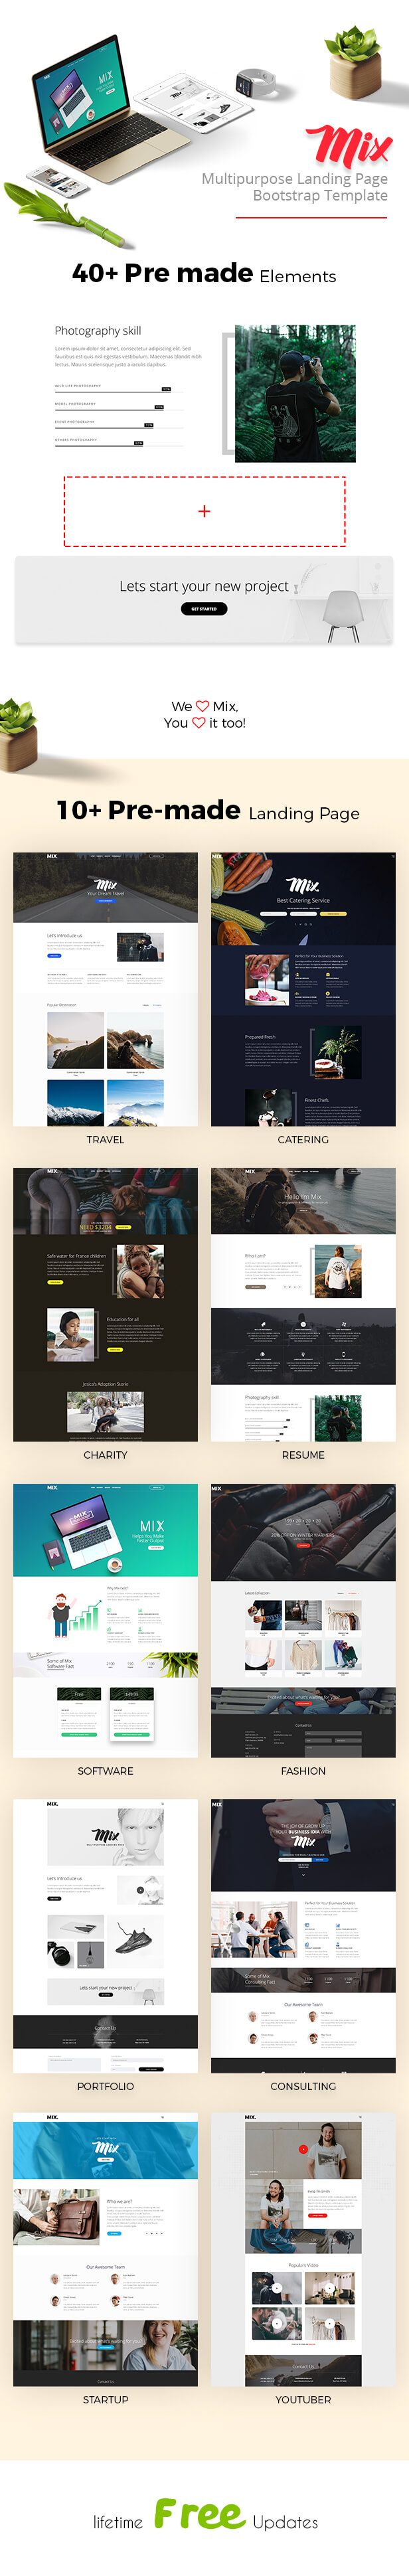 Perfect multipurpose landing page bootstrap templates are like rare